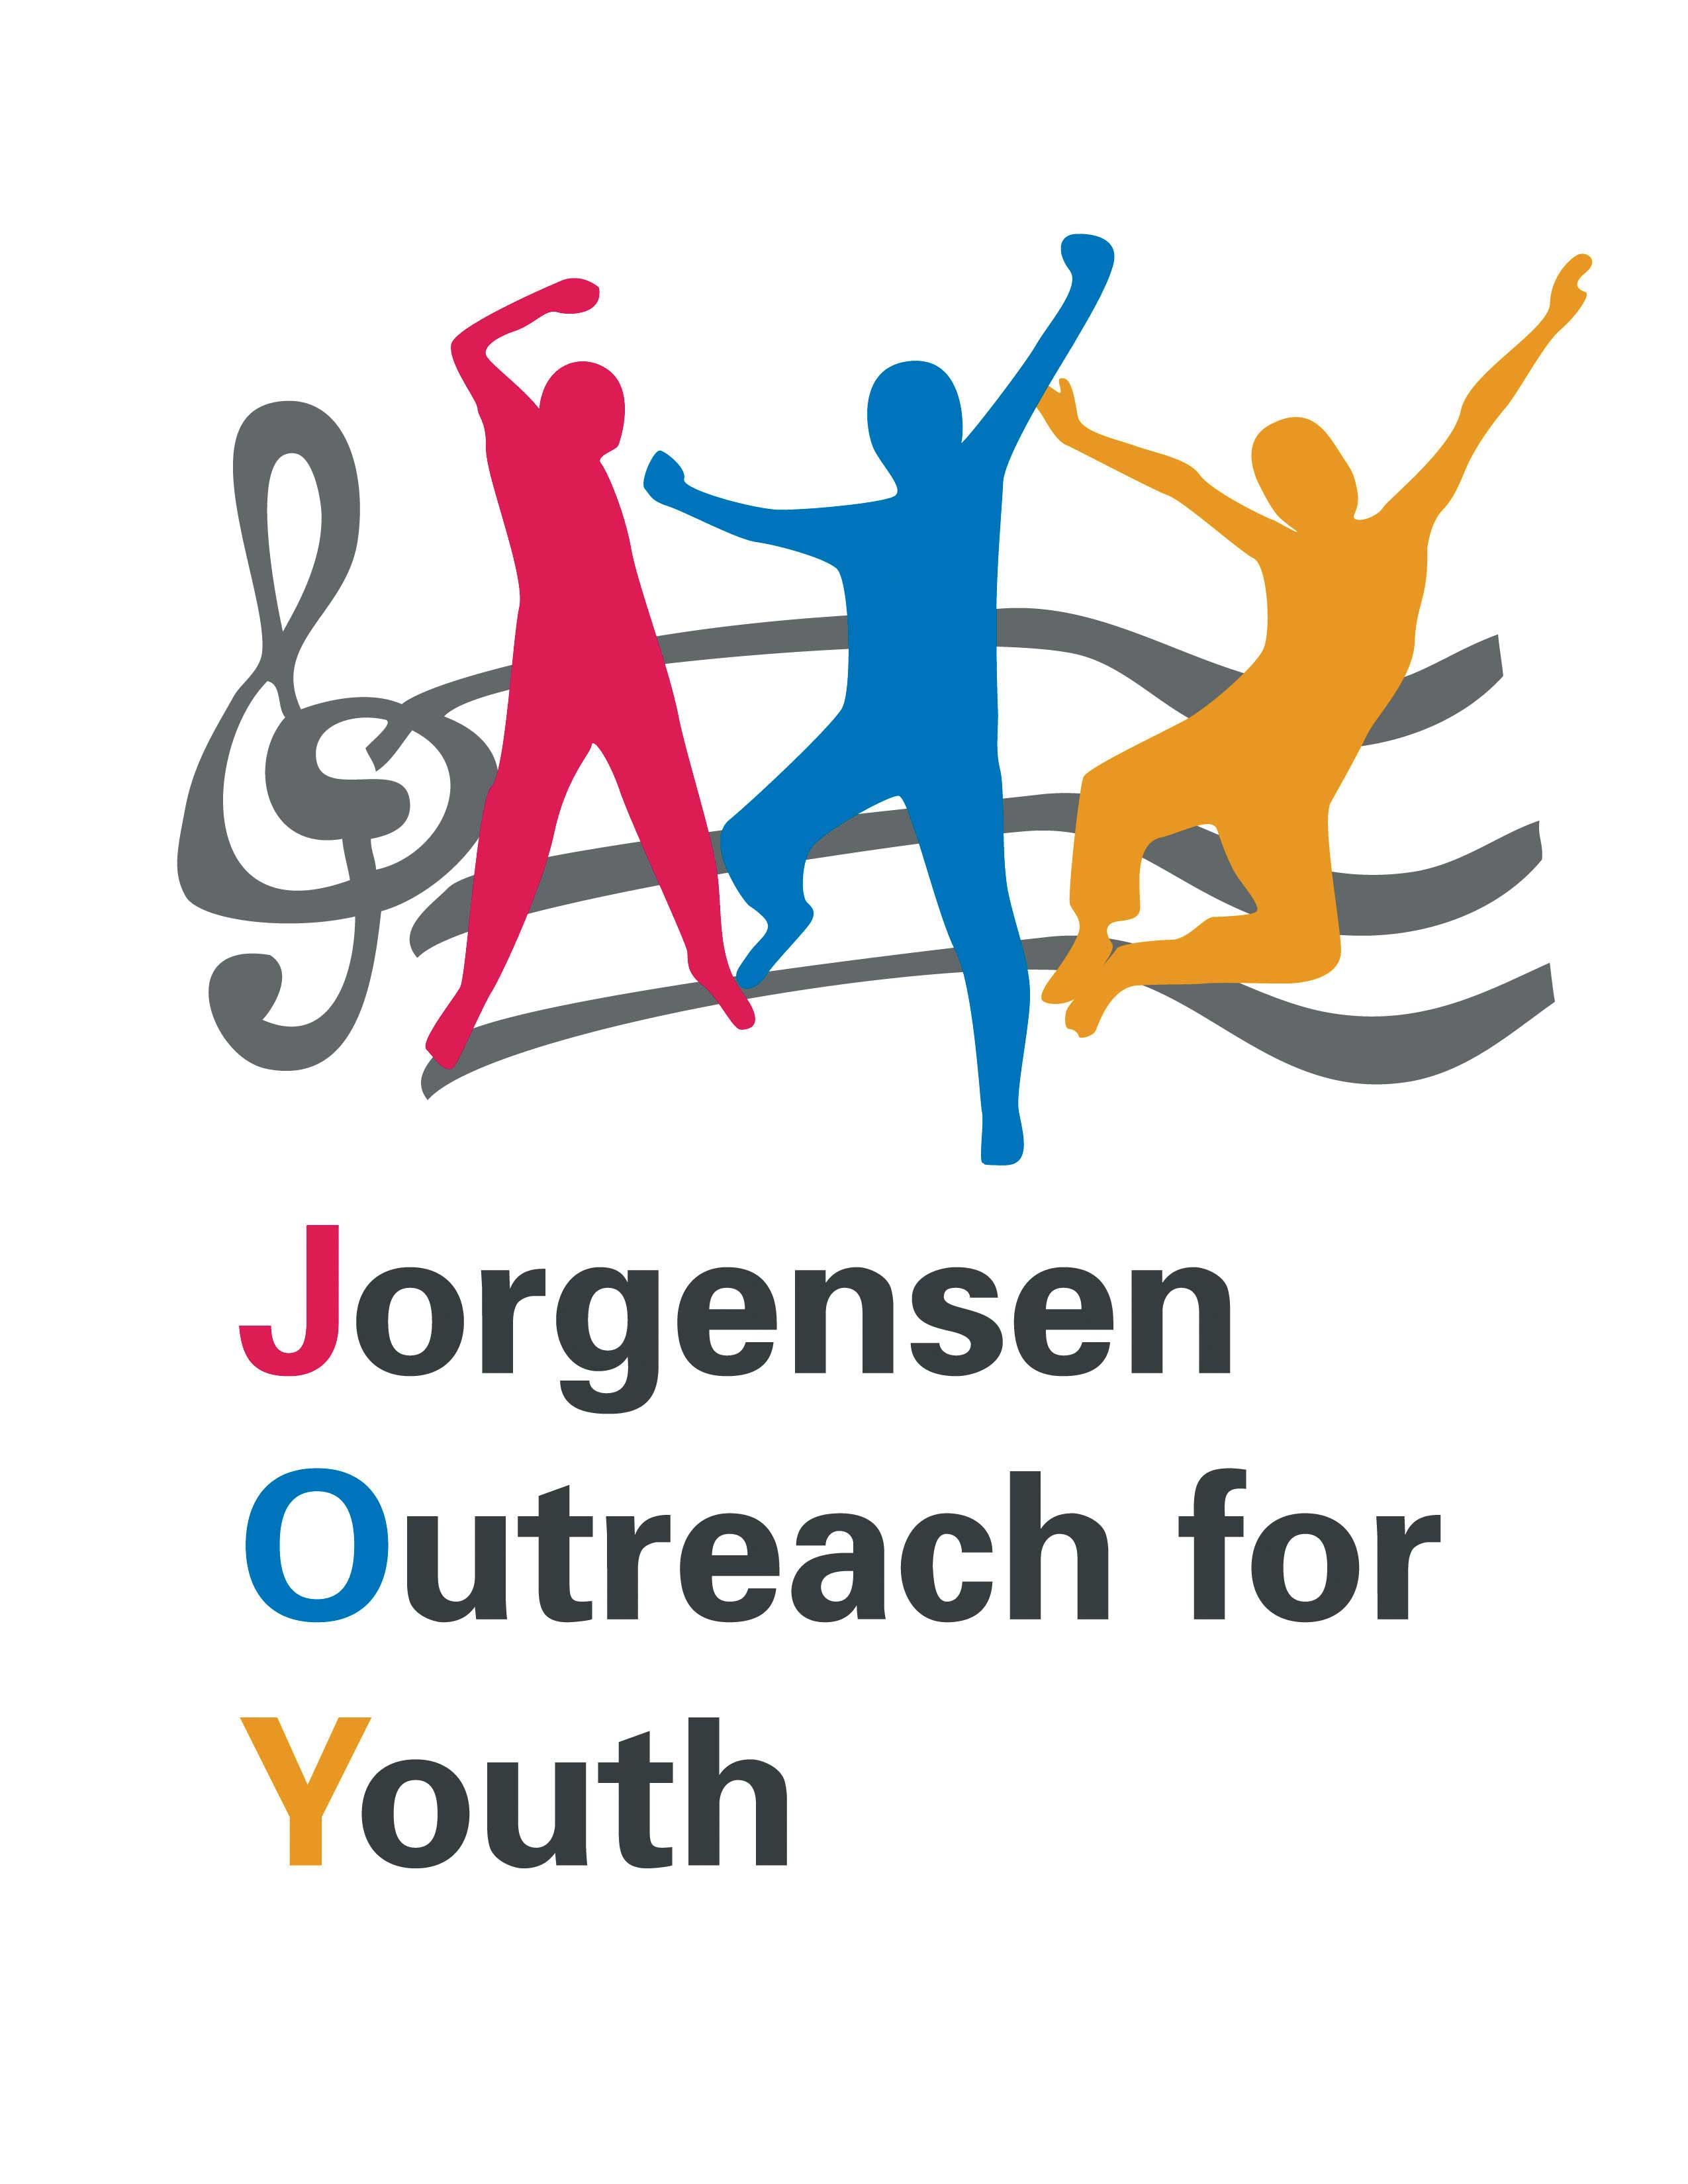 Jorgensen Outreach for Youth logo